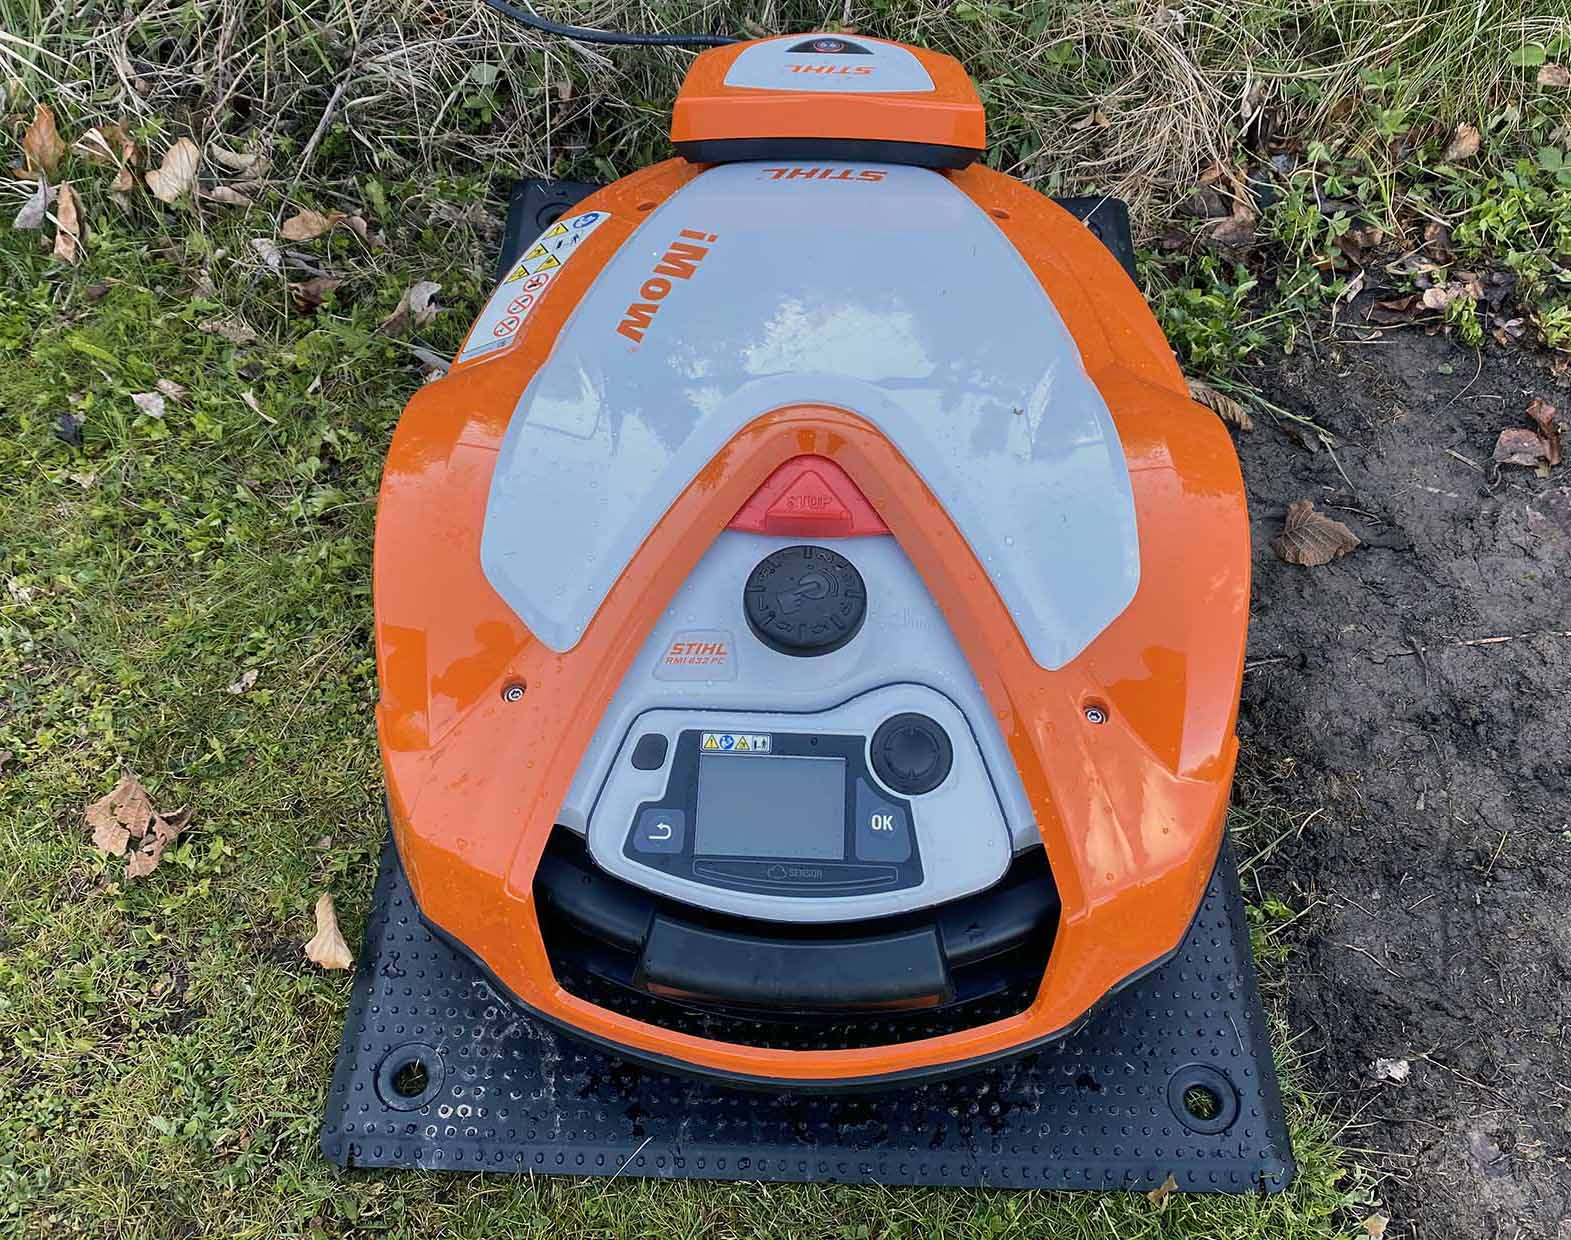 The Stihl RMI 632 PC is a relatively low and compact robotic lawn mower